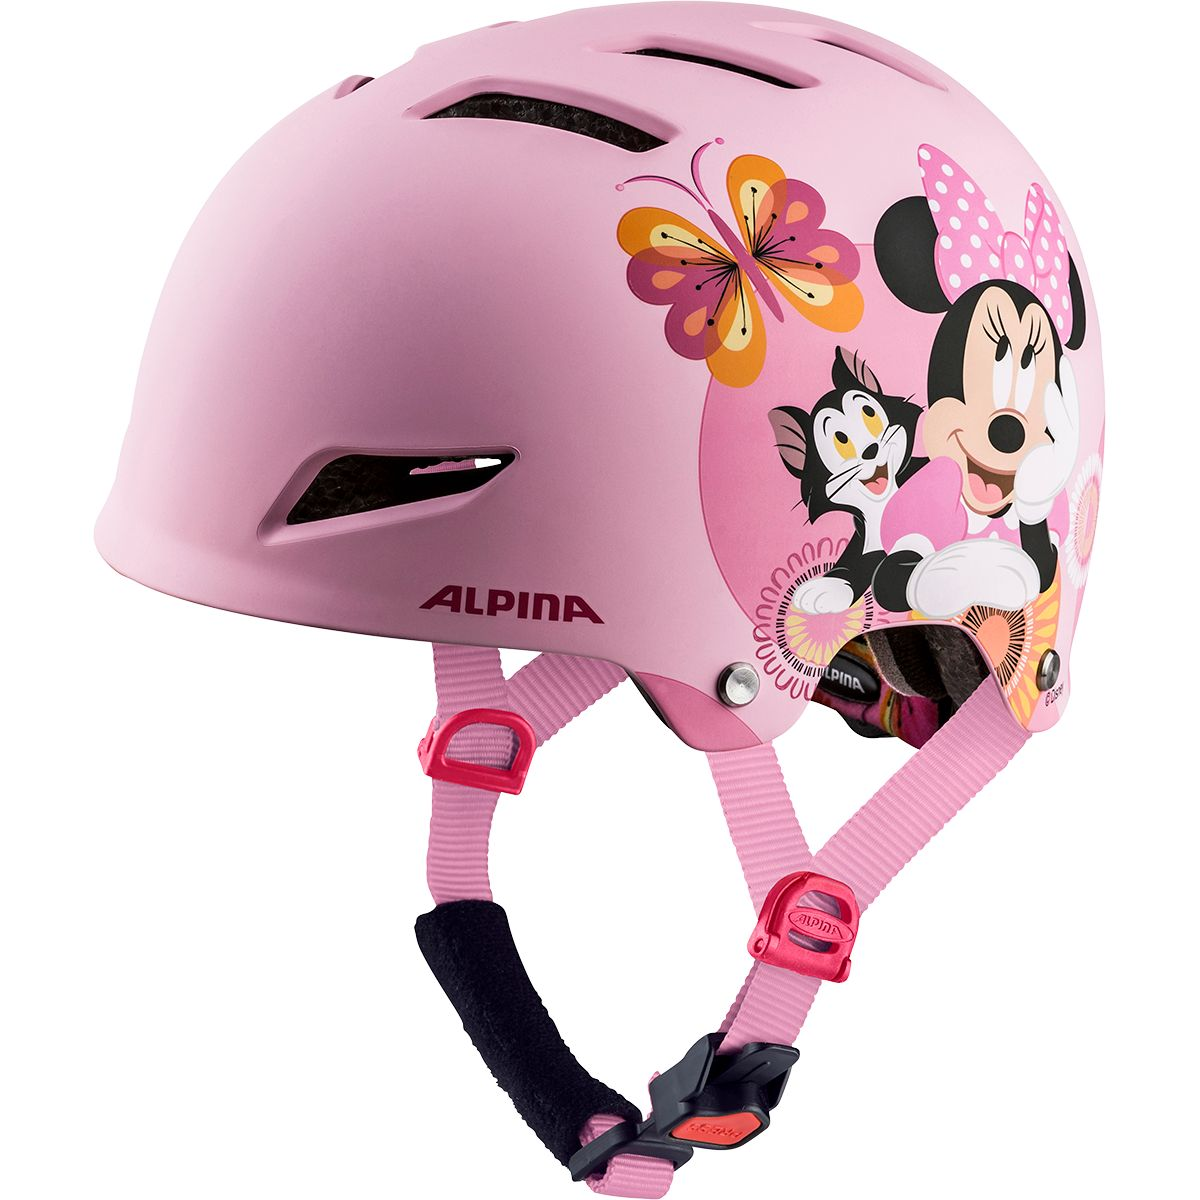 PARK JR. Kids' Helmet